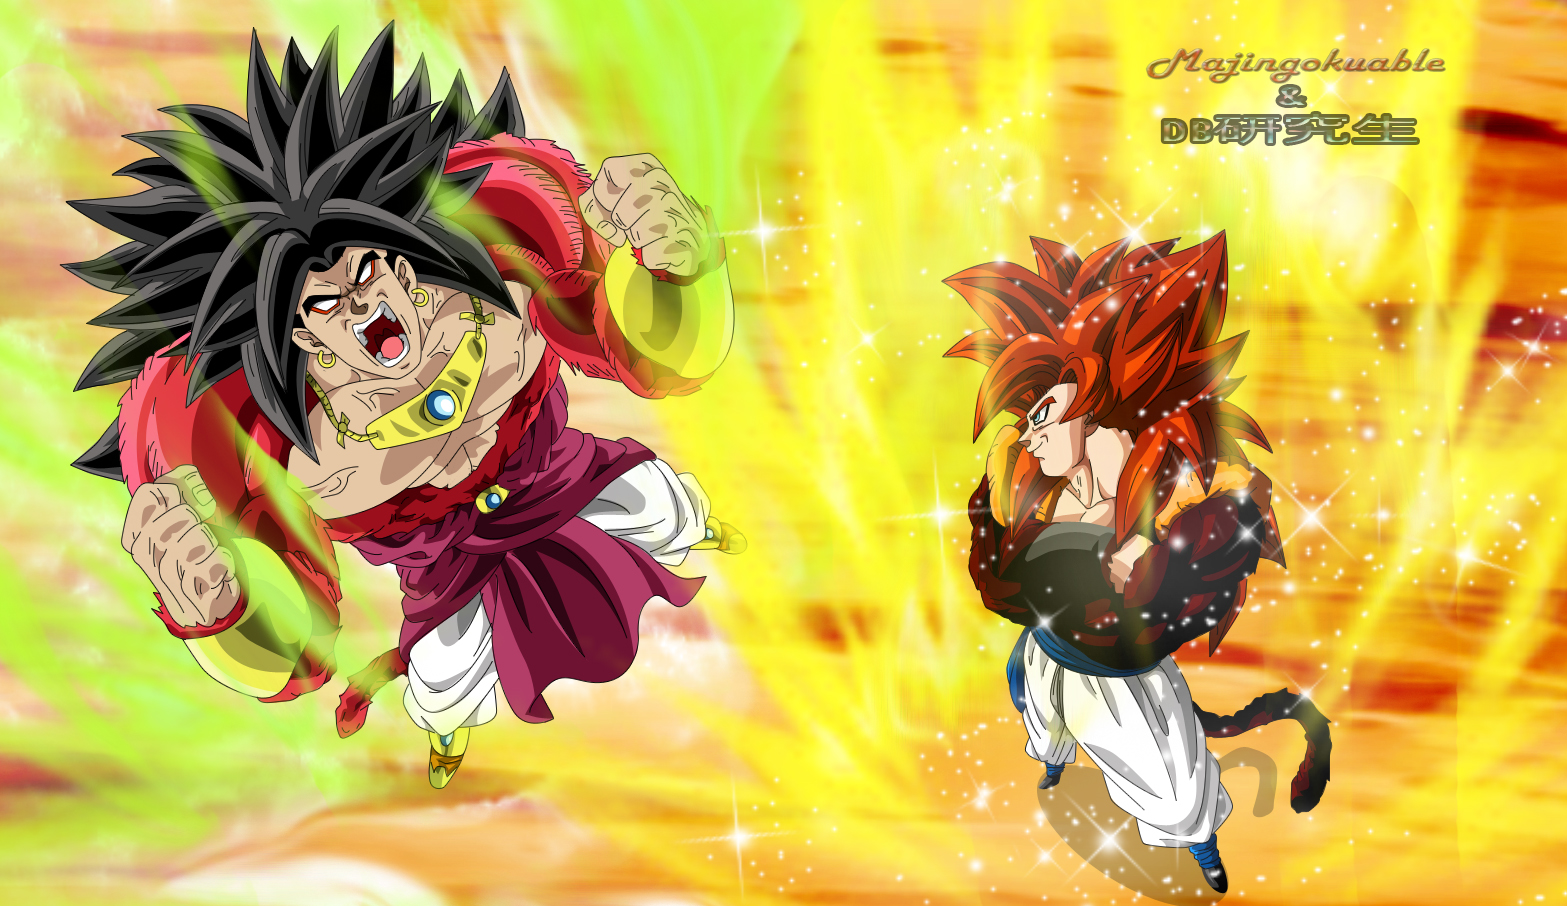 Broly ssj4 vs Gogeta ssj4 by Majingokuable on DeviantArt